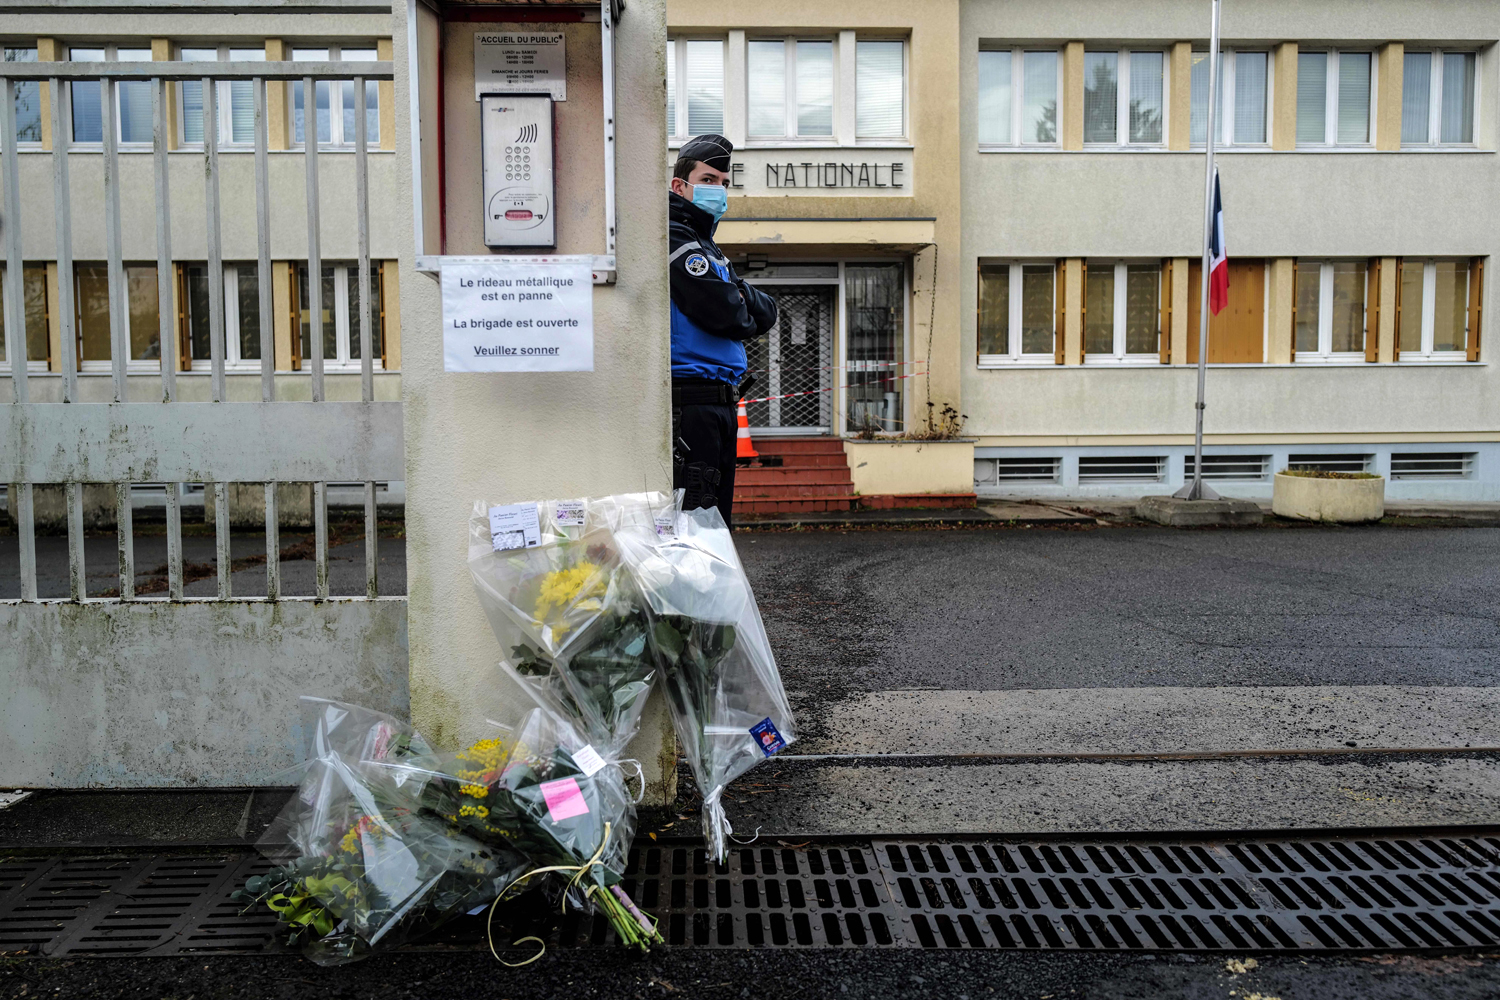 A French Gendarme stands guard next to flowers laid at the entrance of the Gendarmerie